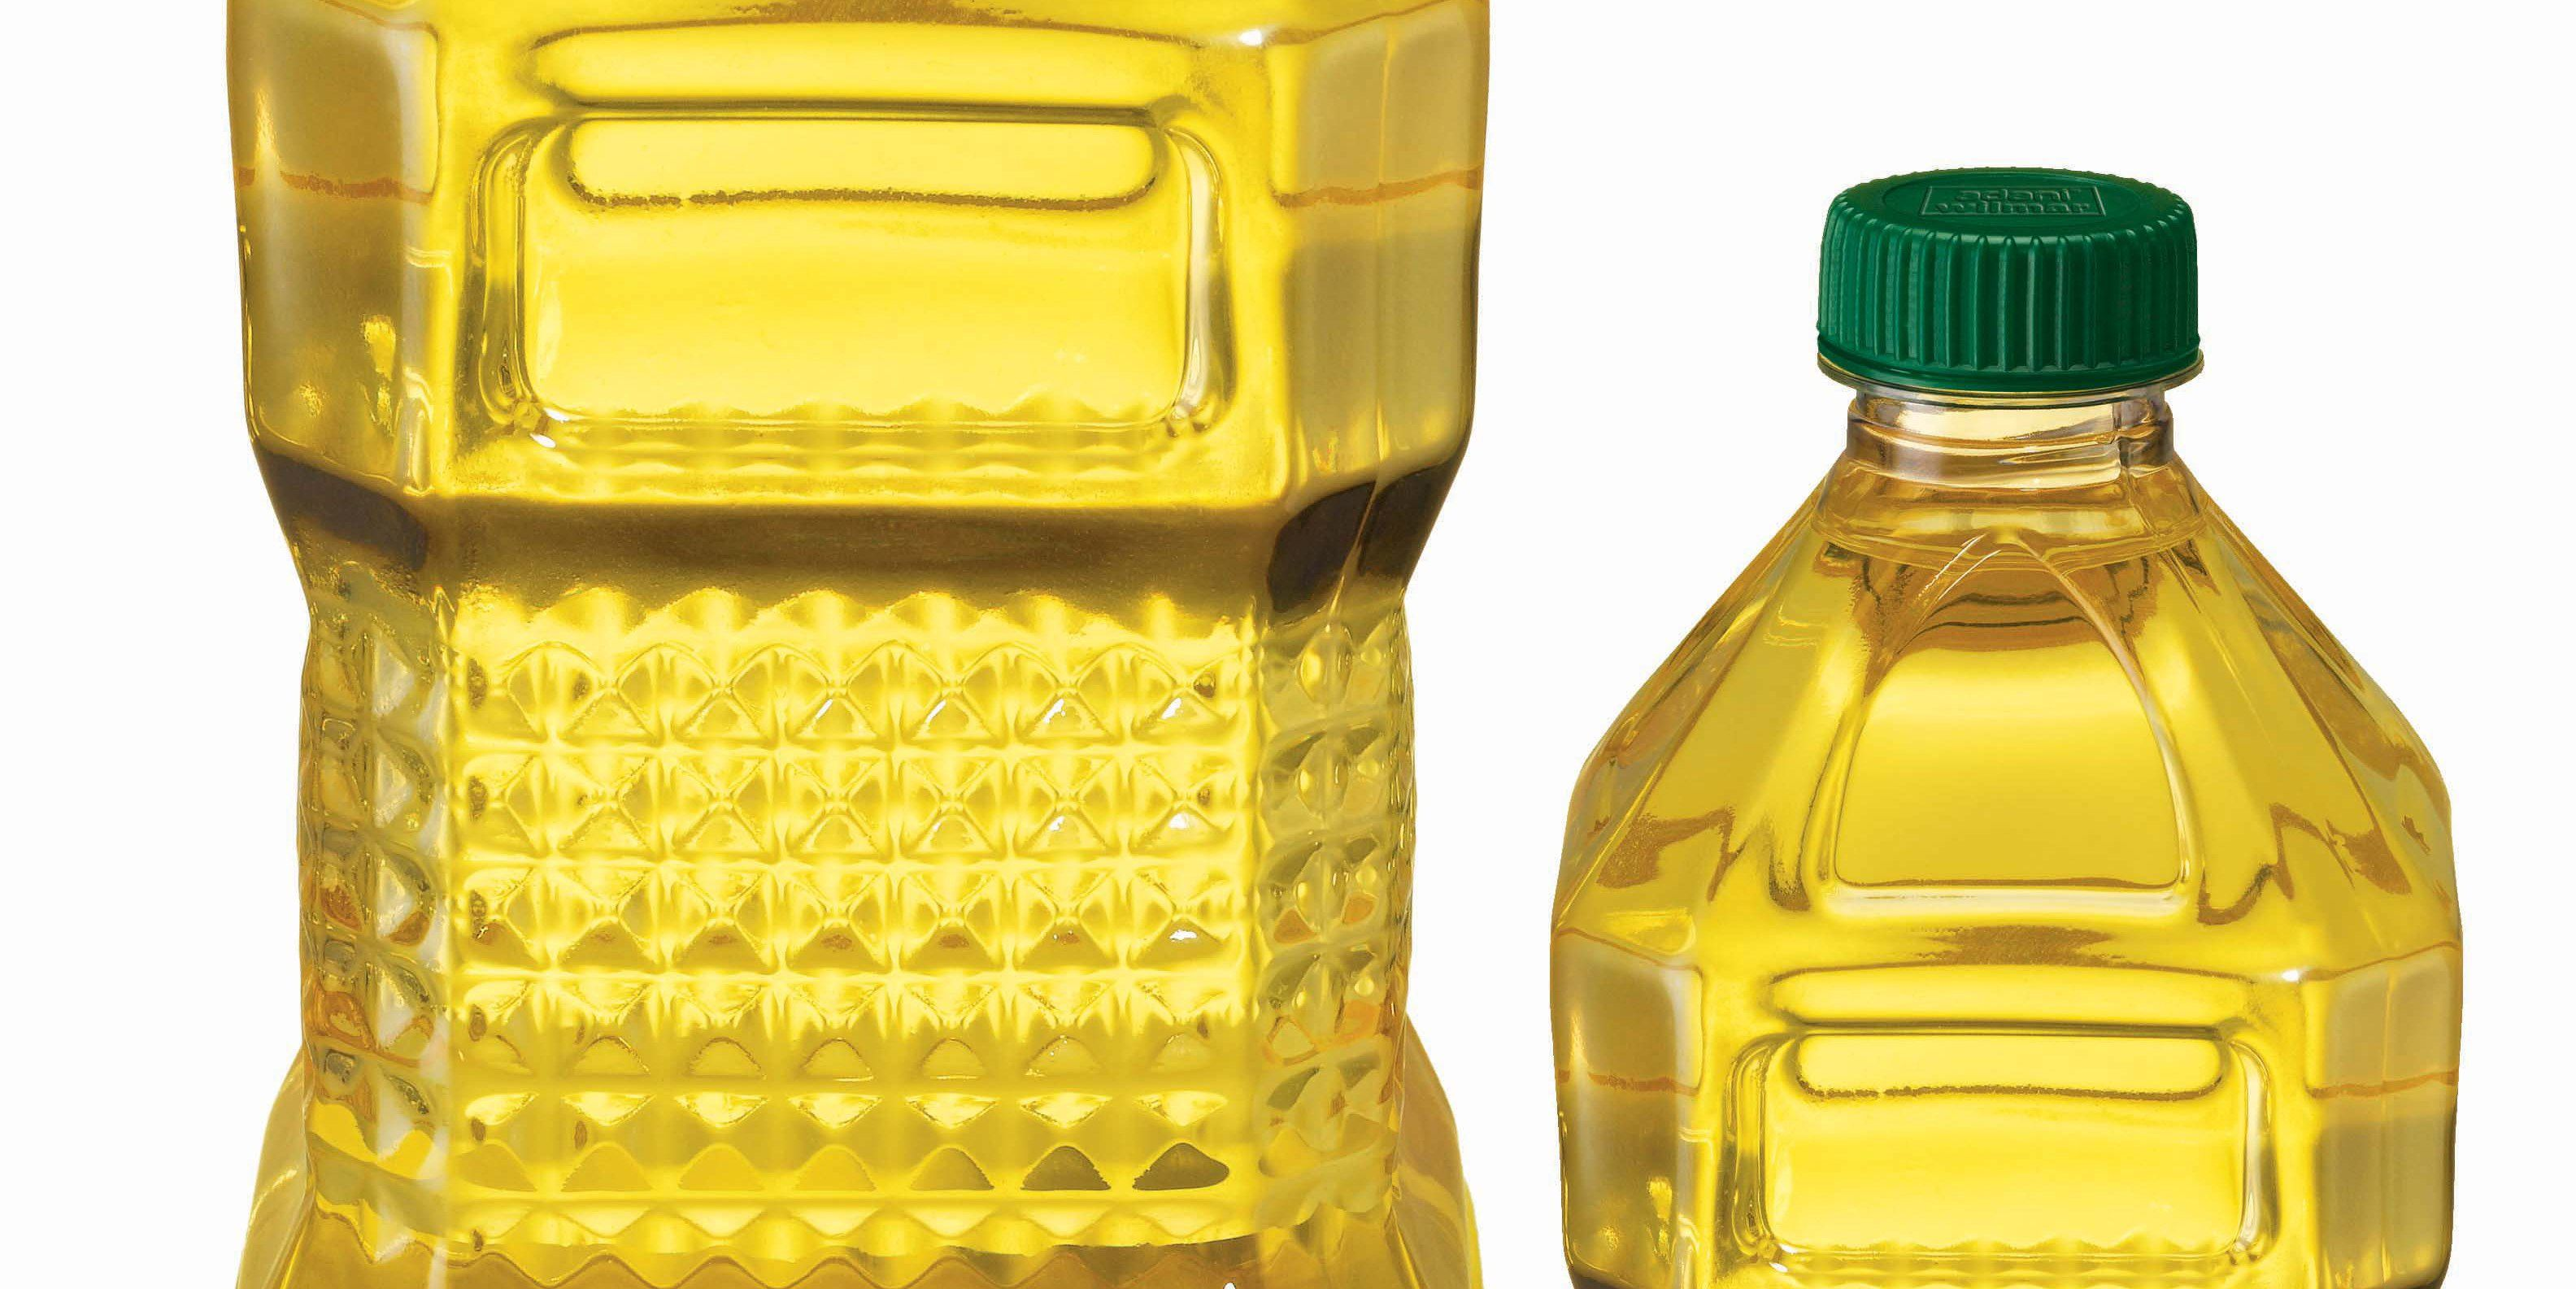 Square-Shaped Edible Oil Bottle - 2016 Diamond Finalist Award  - DuPont Awards for Packaging Innovation.